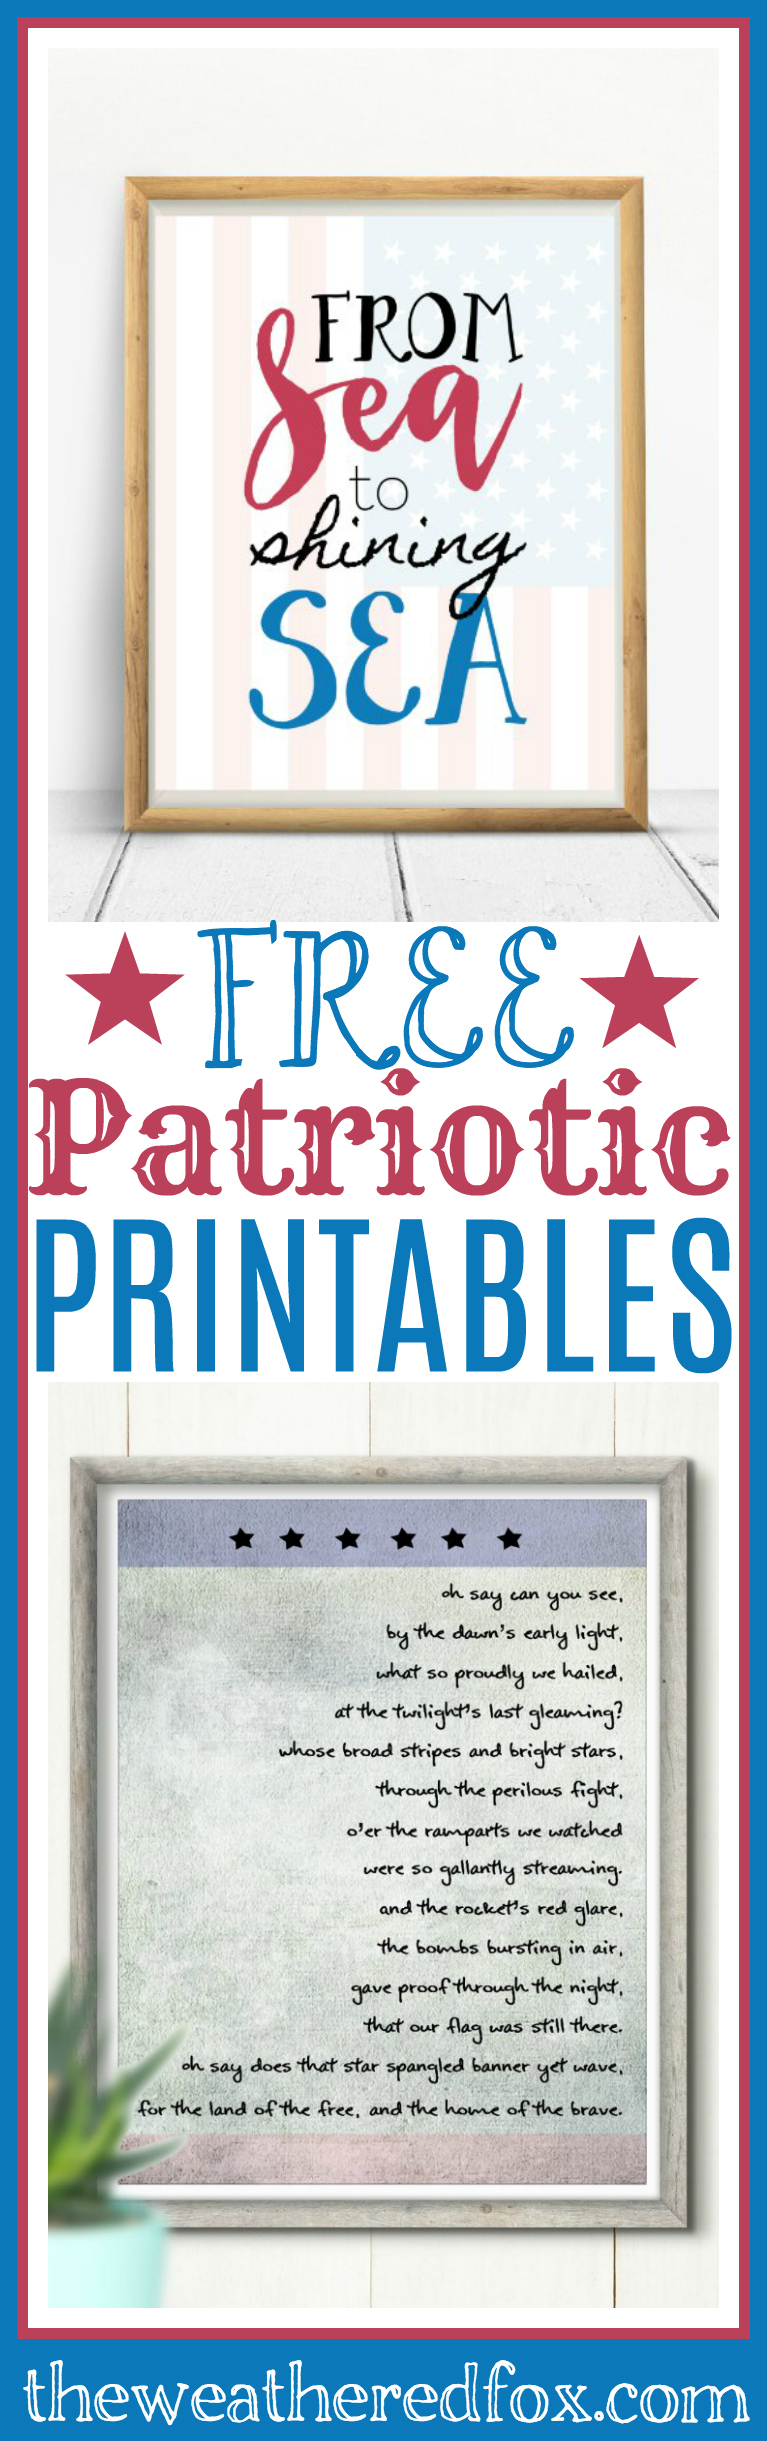 Free Patriotic Printables for your Fourth of July, summer decor, or other patriotic party!